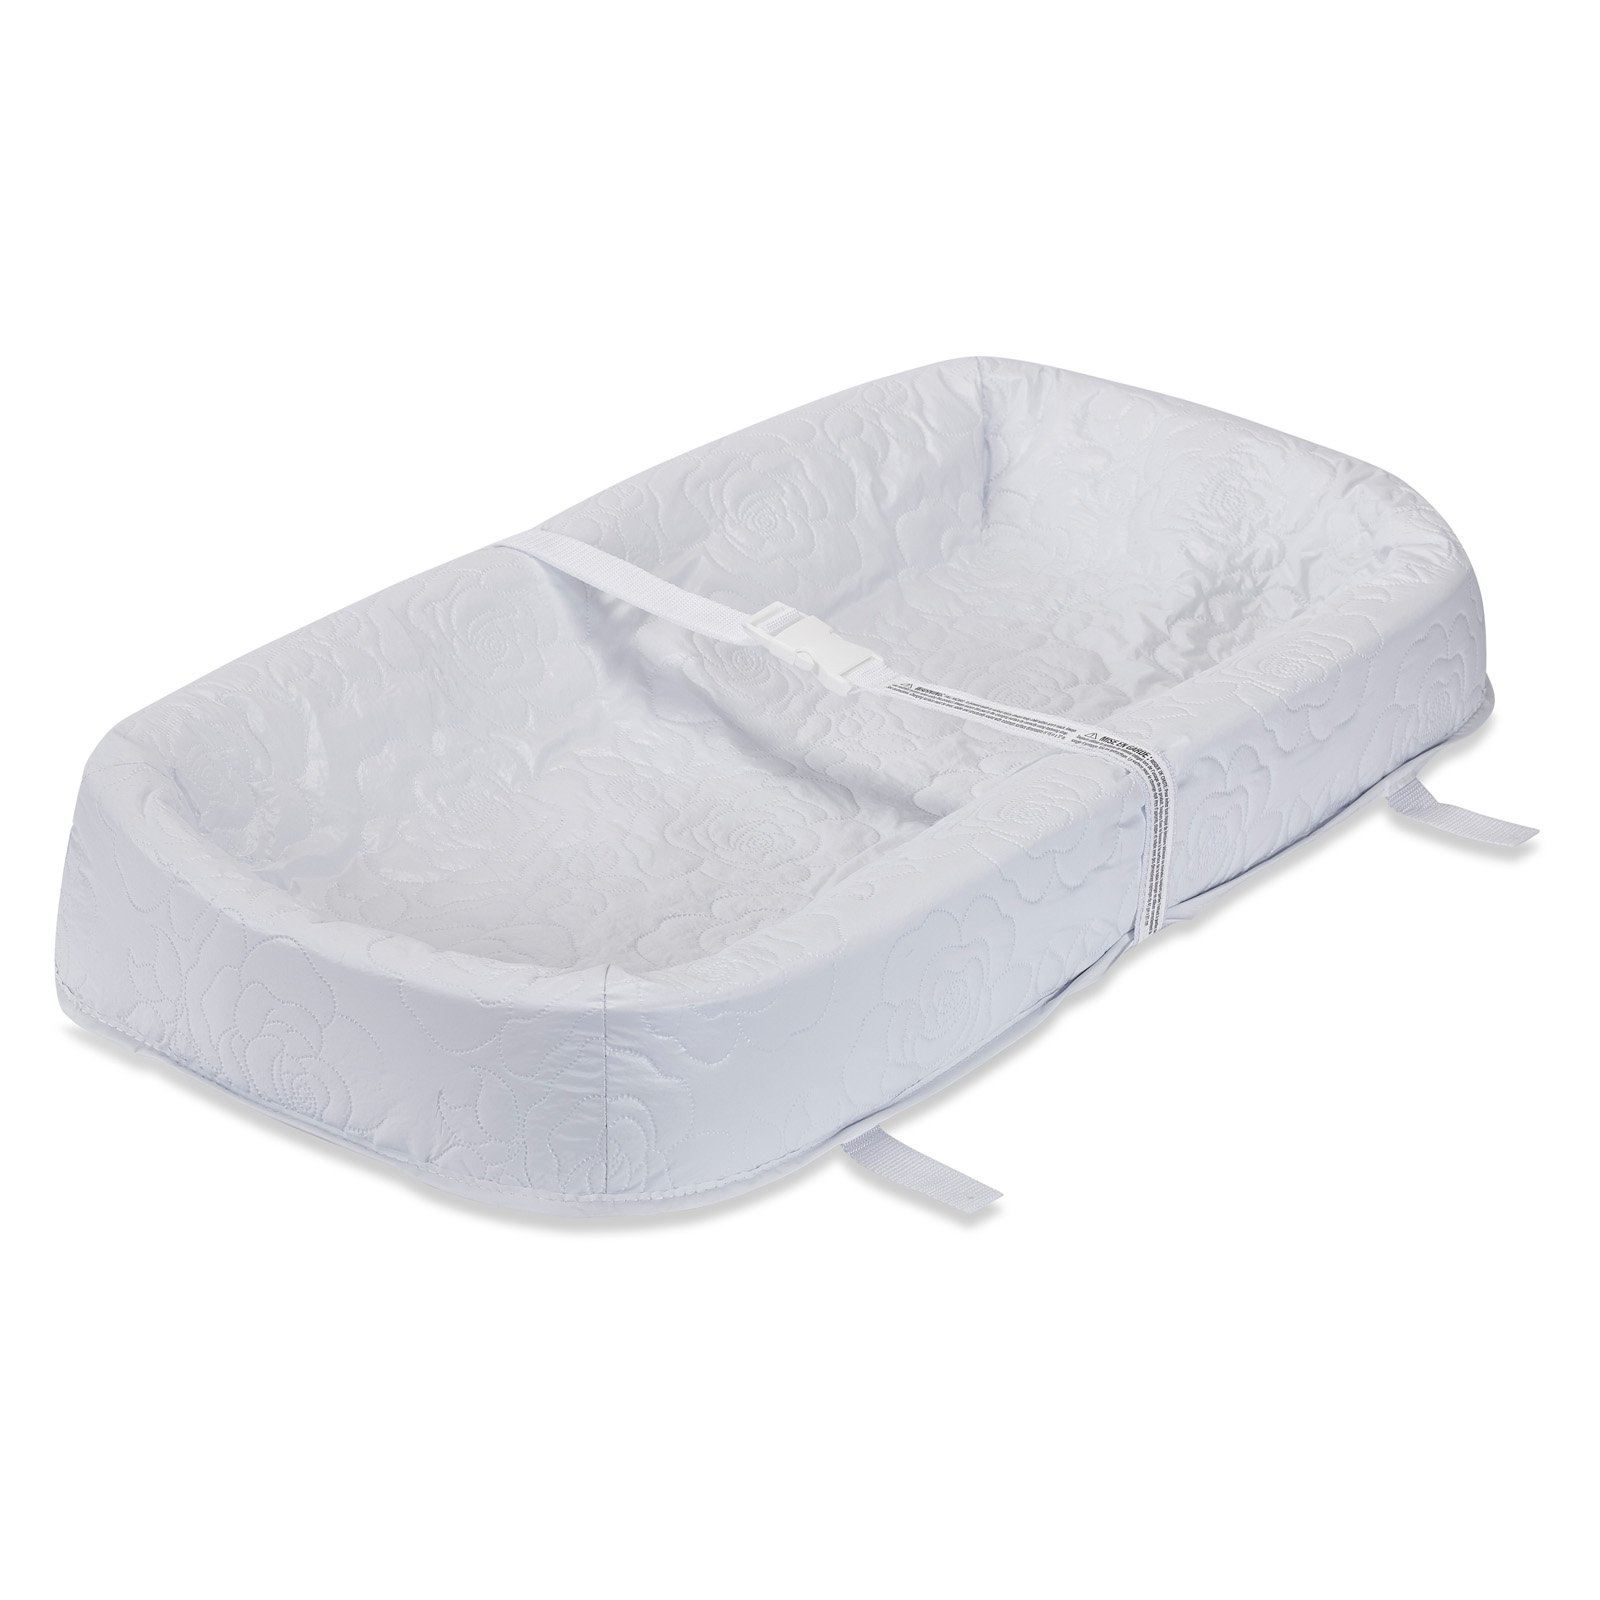 LA Baby 4-Sided Changing Pad by L.A. Baby